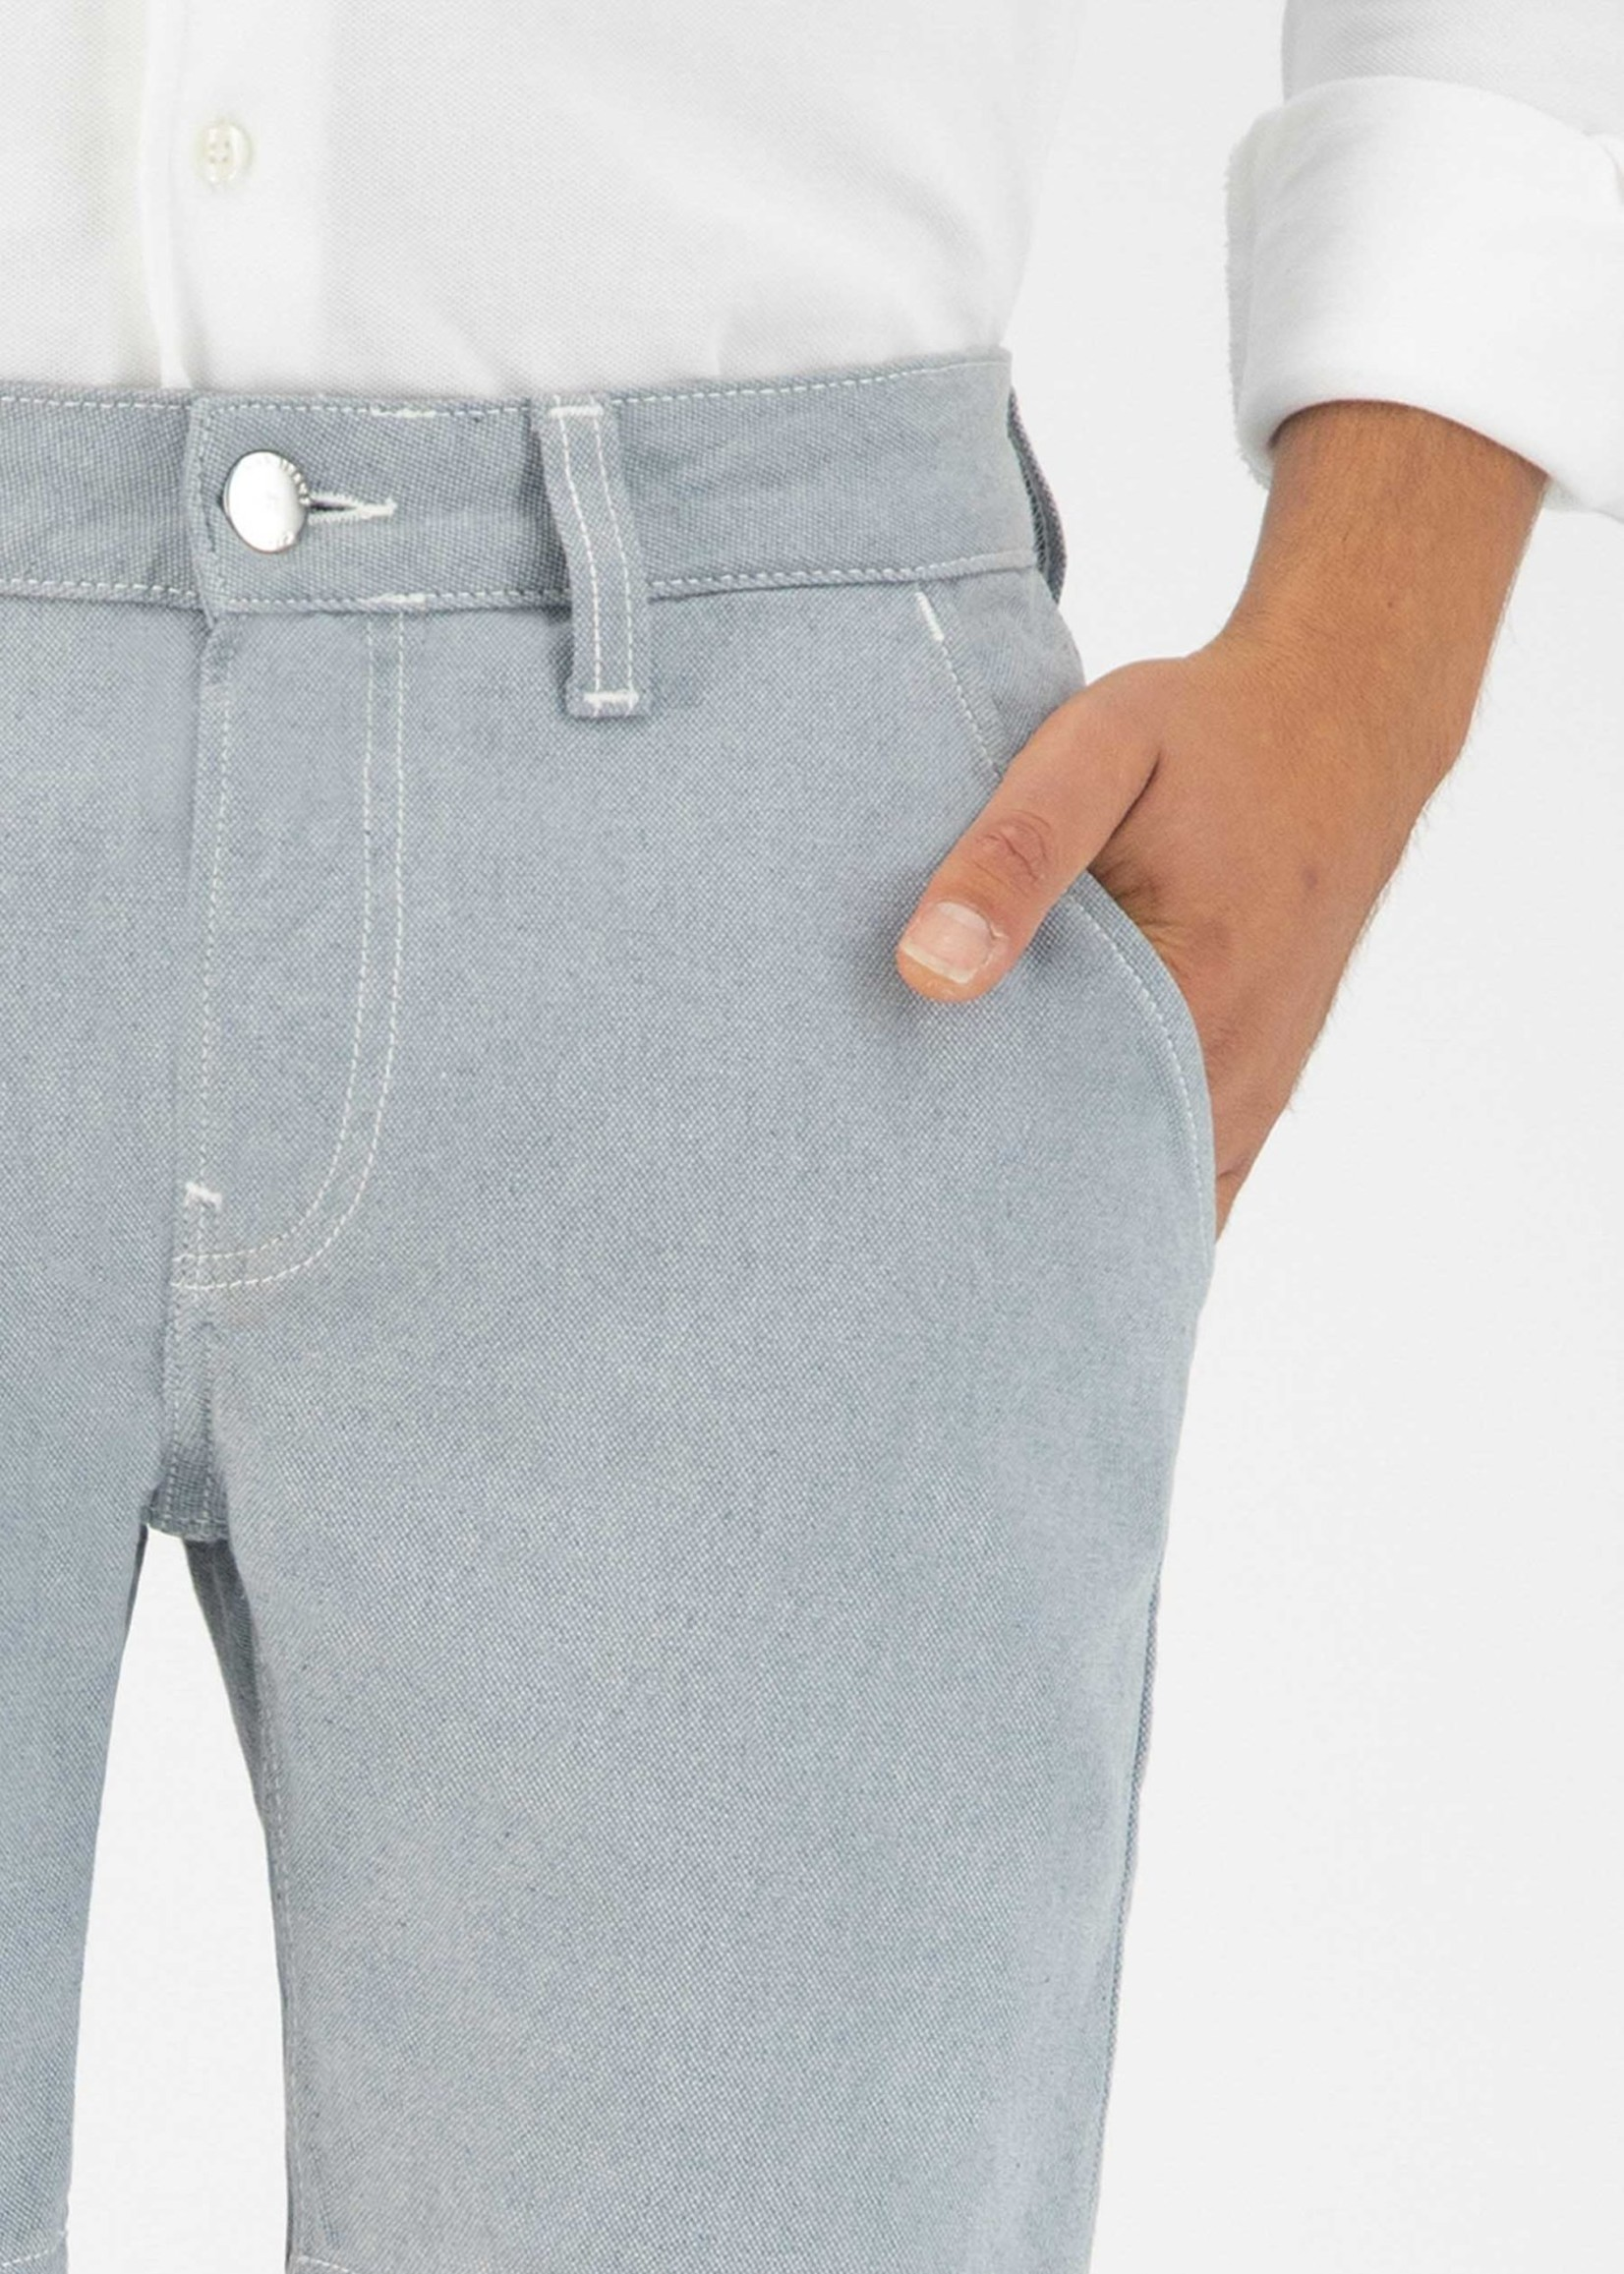 MUD Jeans MUD Jeans - Luca Short - Undyed